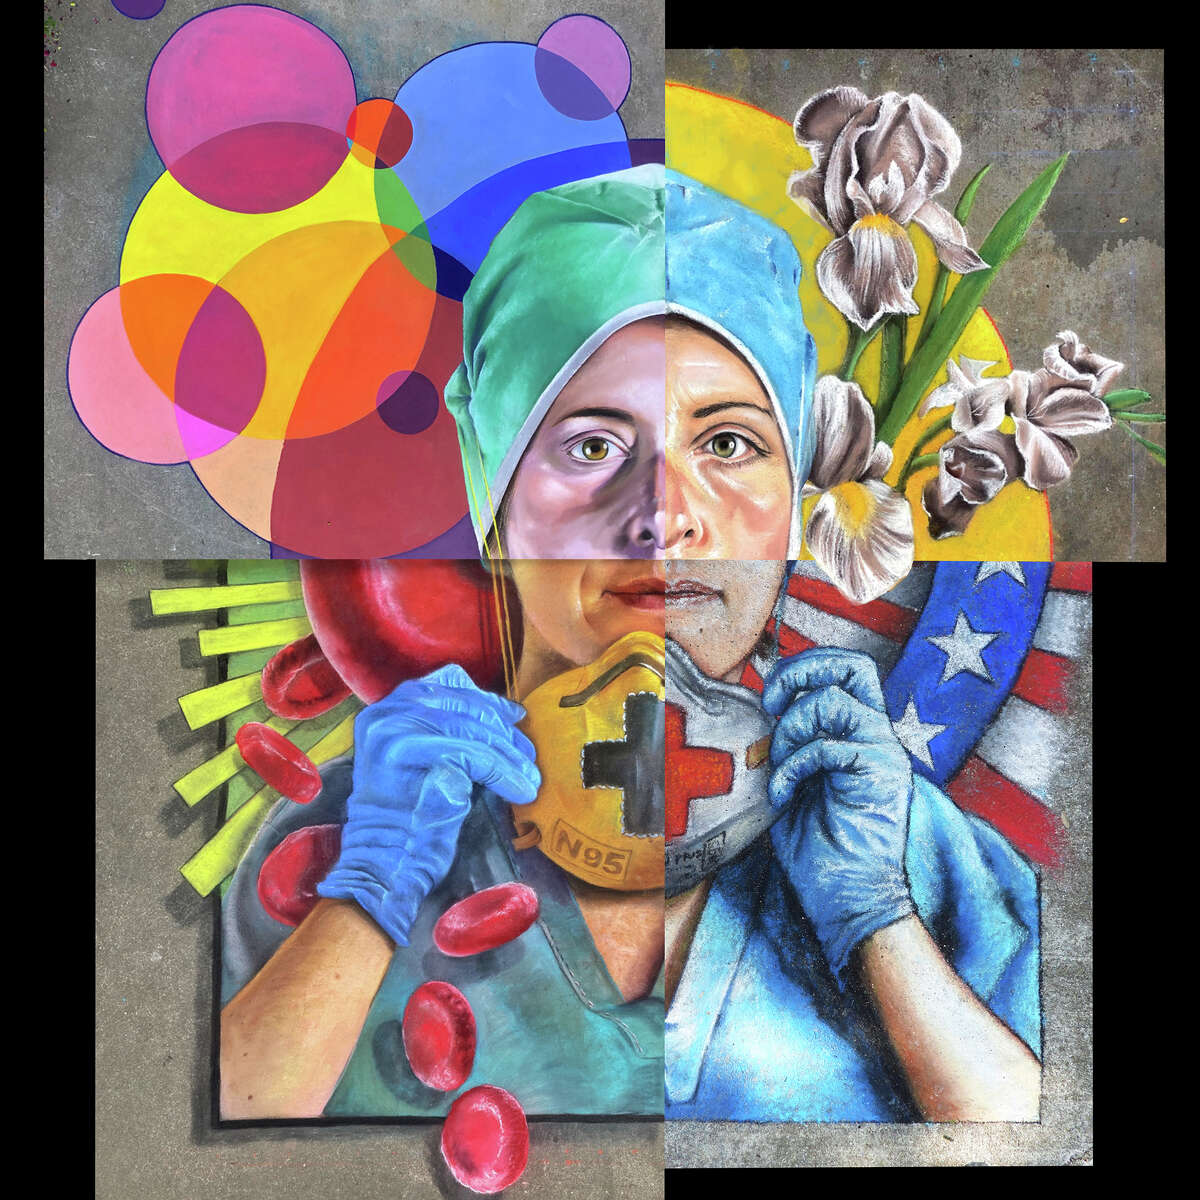 Houston artist, Anat Ronen participated in a cross-country chalk art collaborative project in homage of the times by designing a quadrant of the piece in honor of fellow artist and nurse Shelley Downs Brenner.